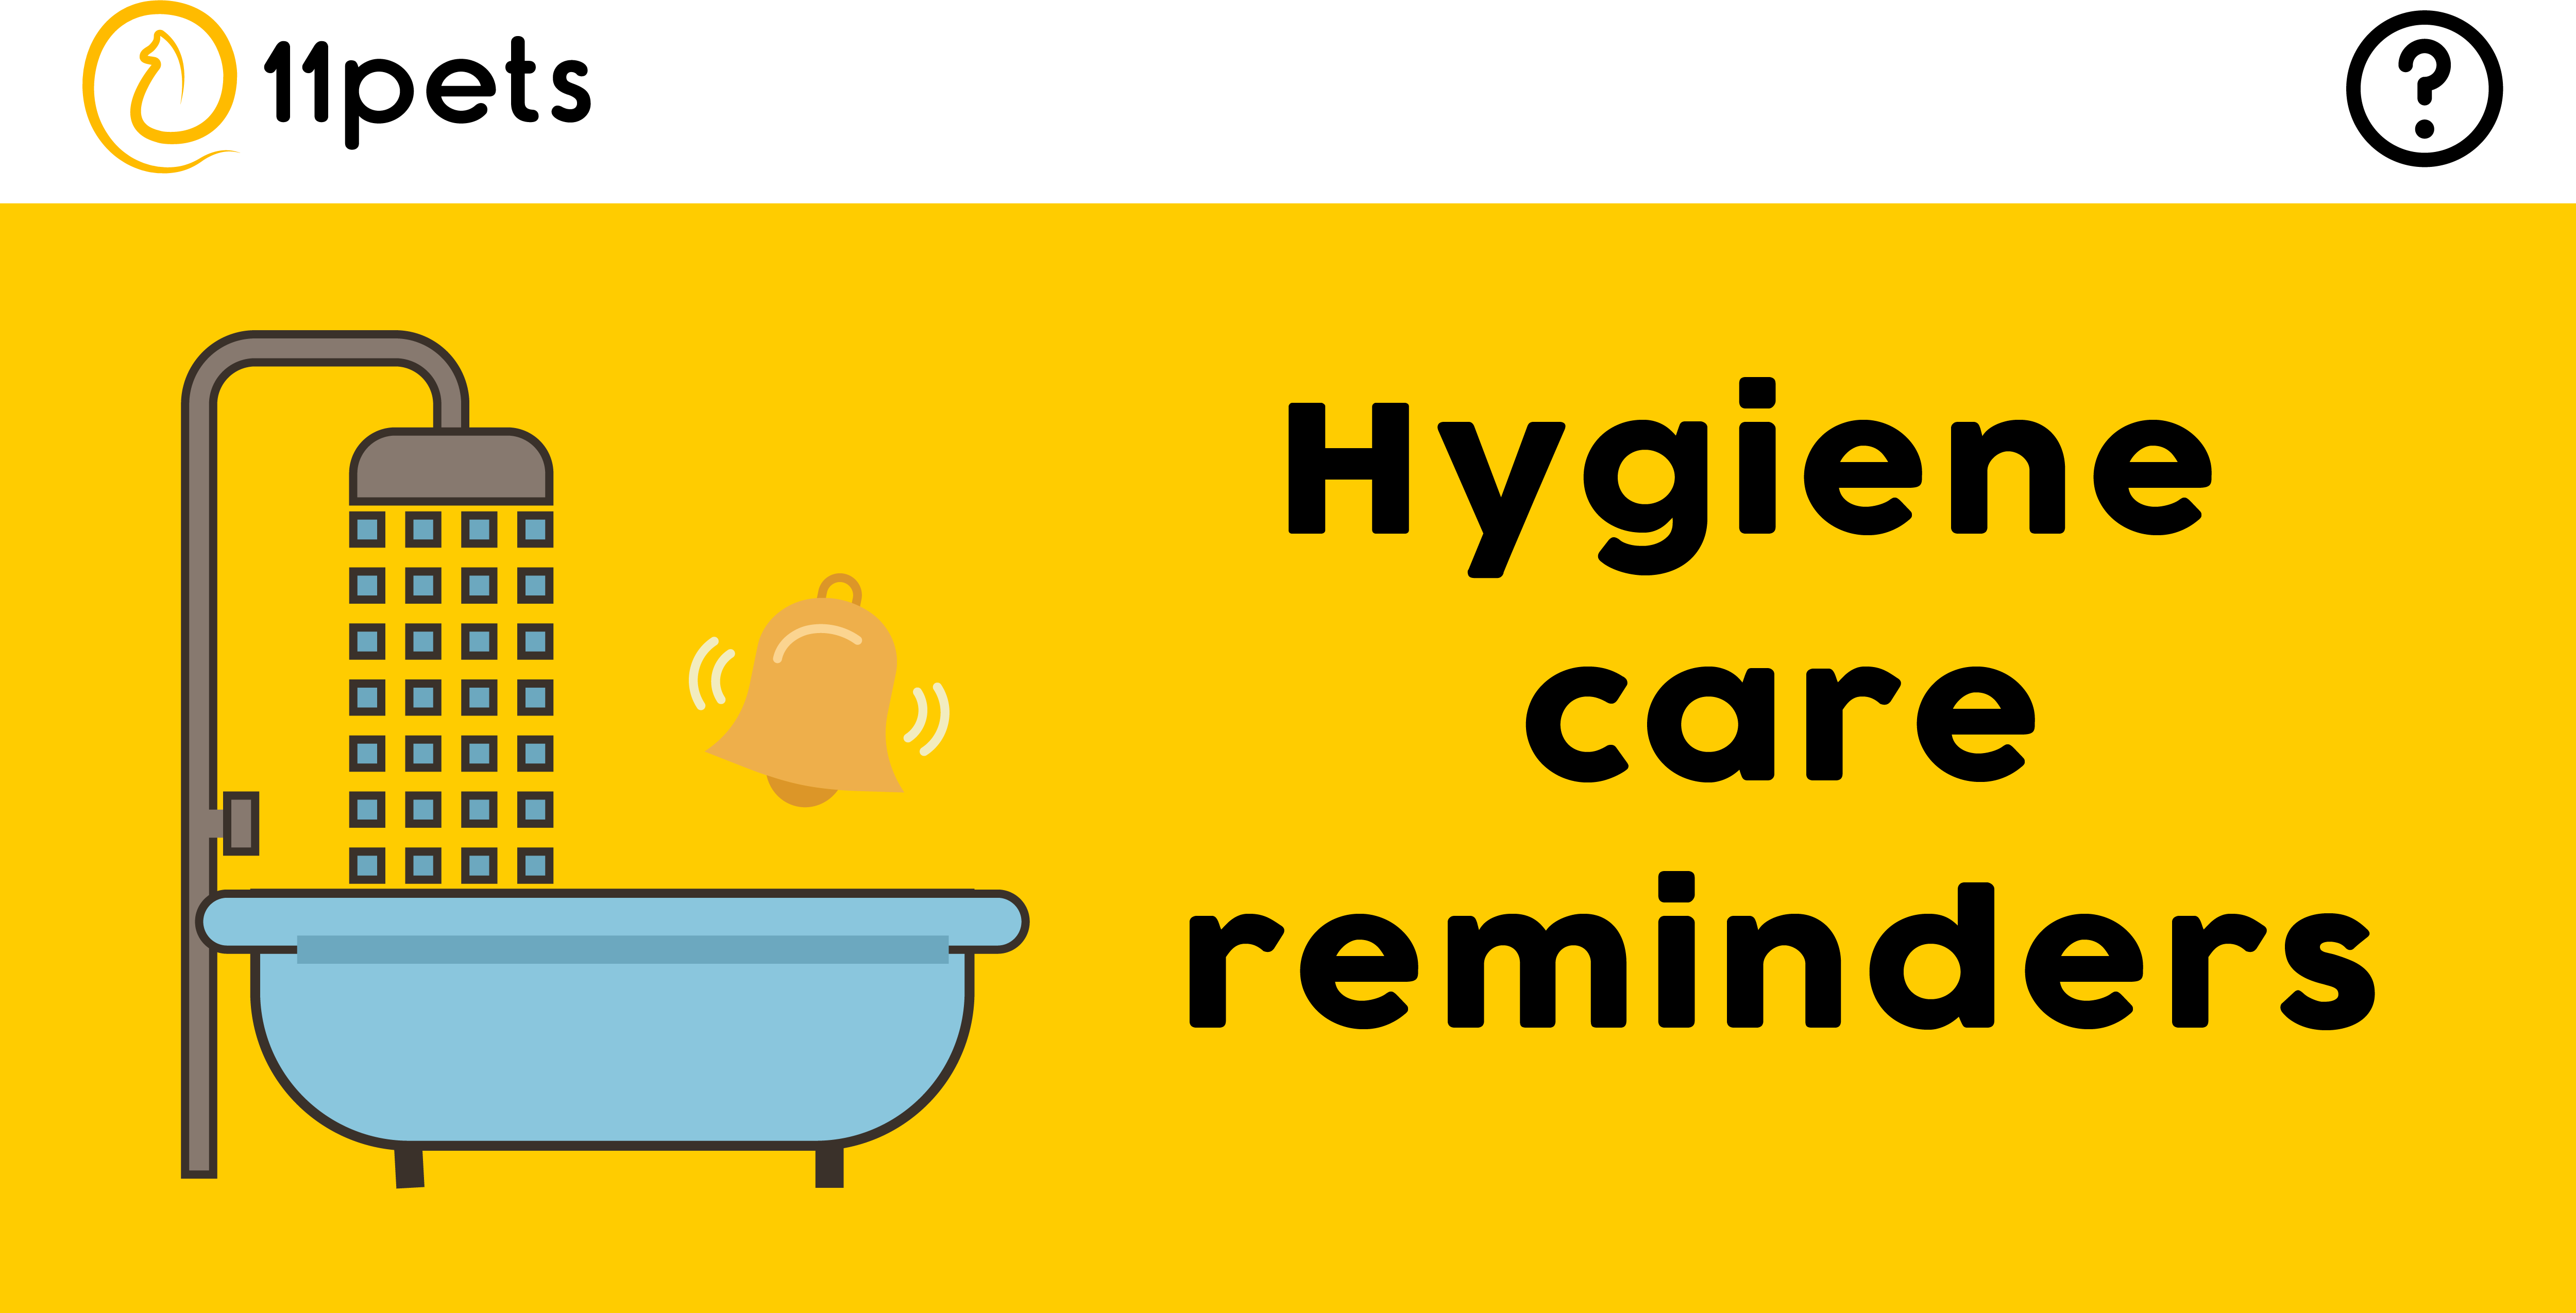 Hygiene care reminders for your pet